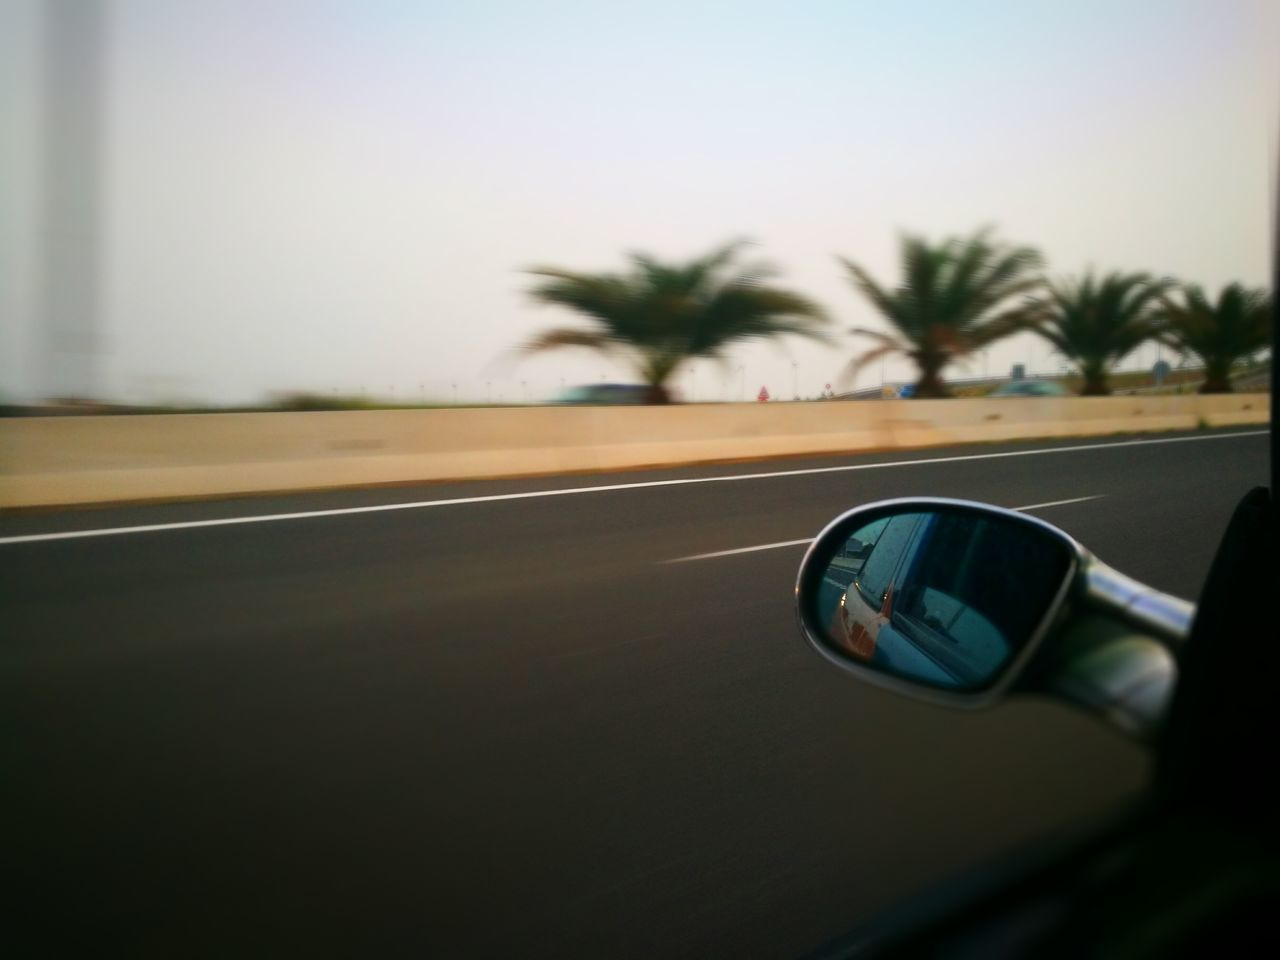 Traveling Home For The Holidays Car Palm Tree Transportation Tree No People Vehicle Mirror Sky Day Close-up Outdoors HuaweiP9 Transportation Travel Photography Car Travel